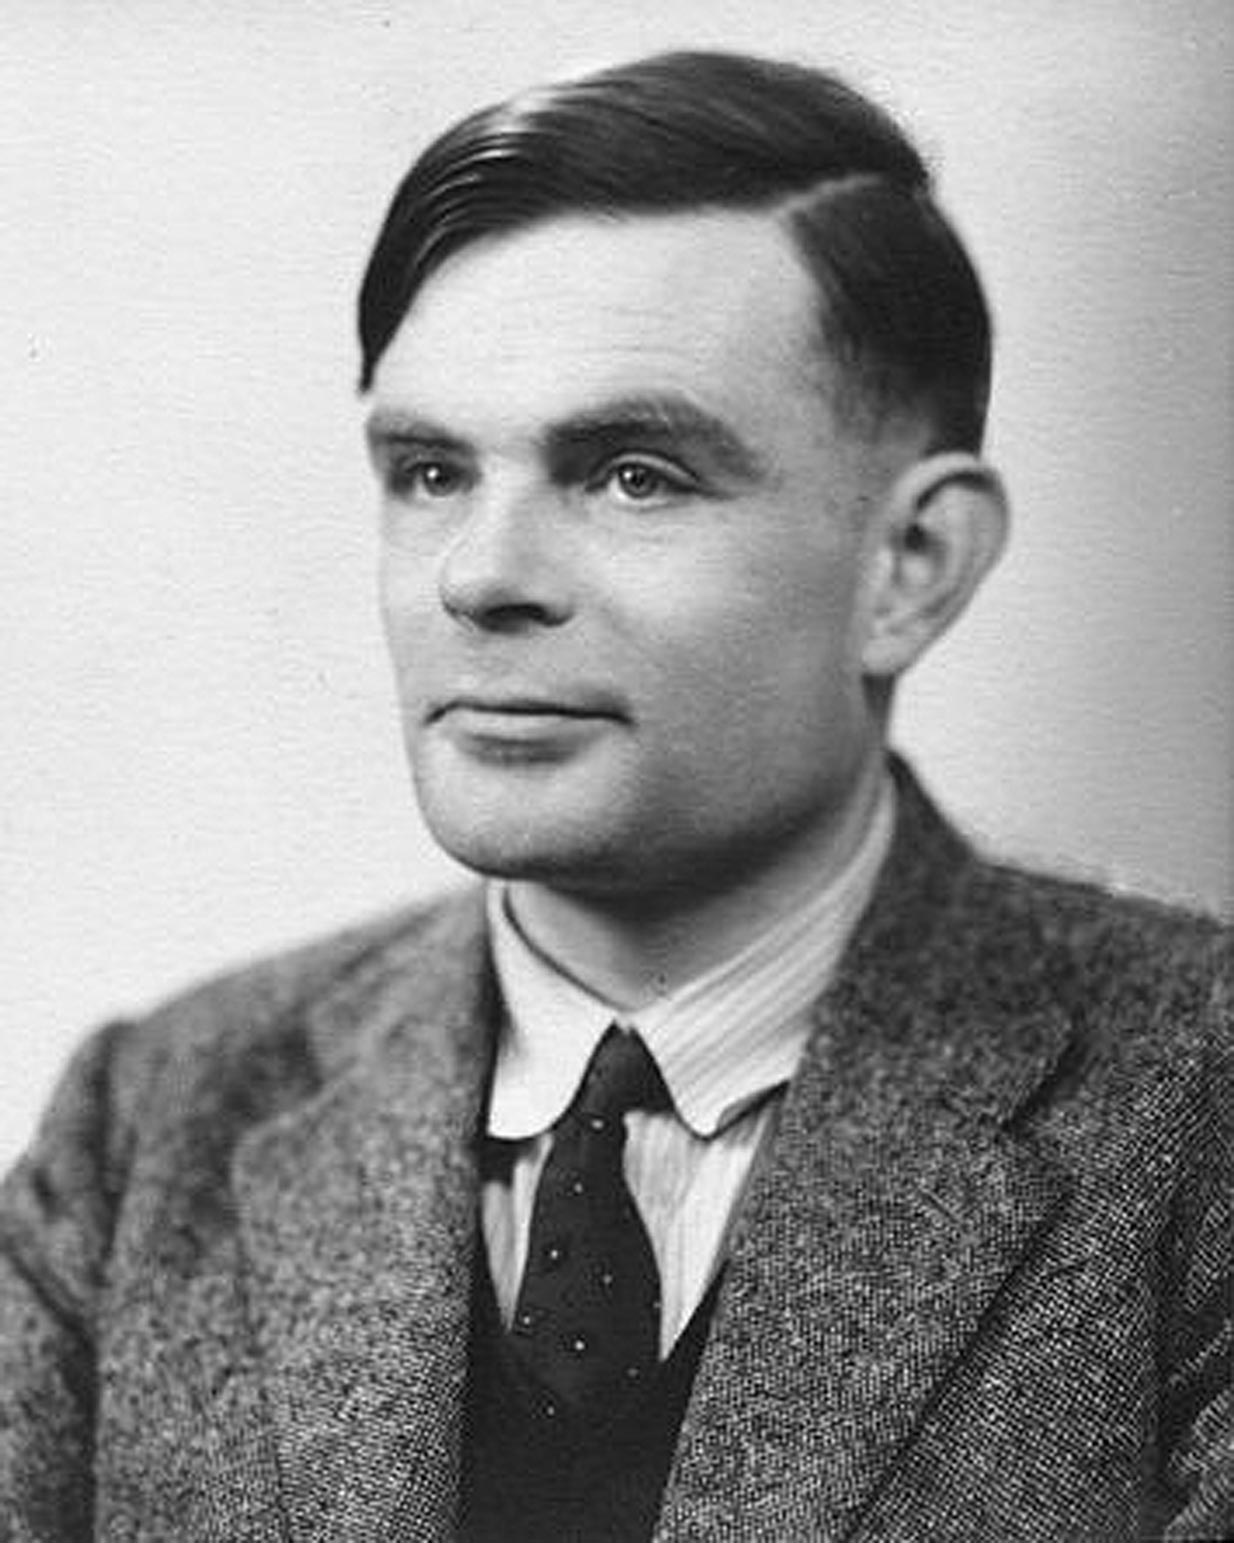 Alan Turing, a talented mathematician and the father of modern computing, who was instrumental in cracking cracking intercepted coded messages from the Nazis